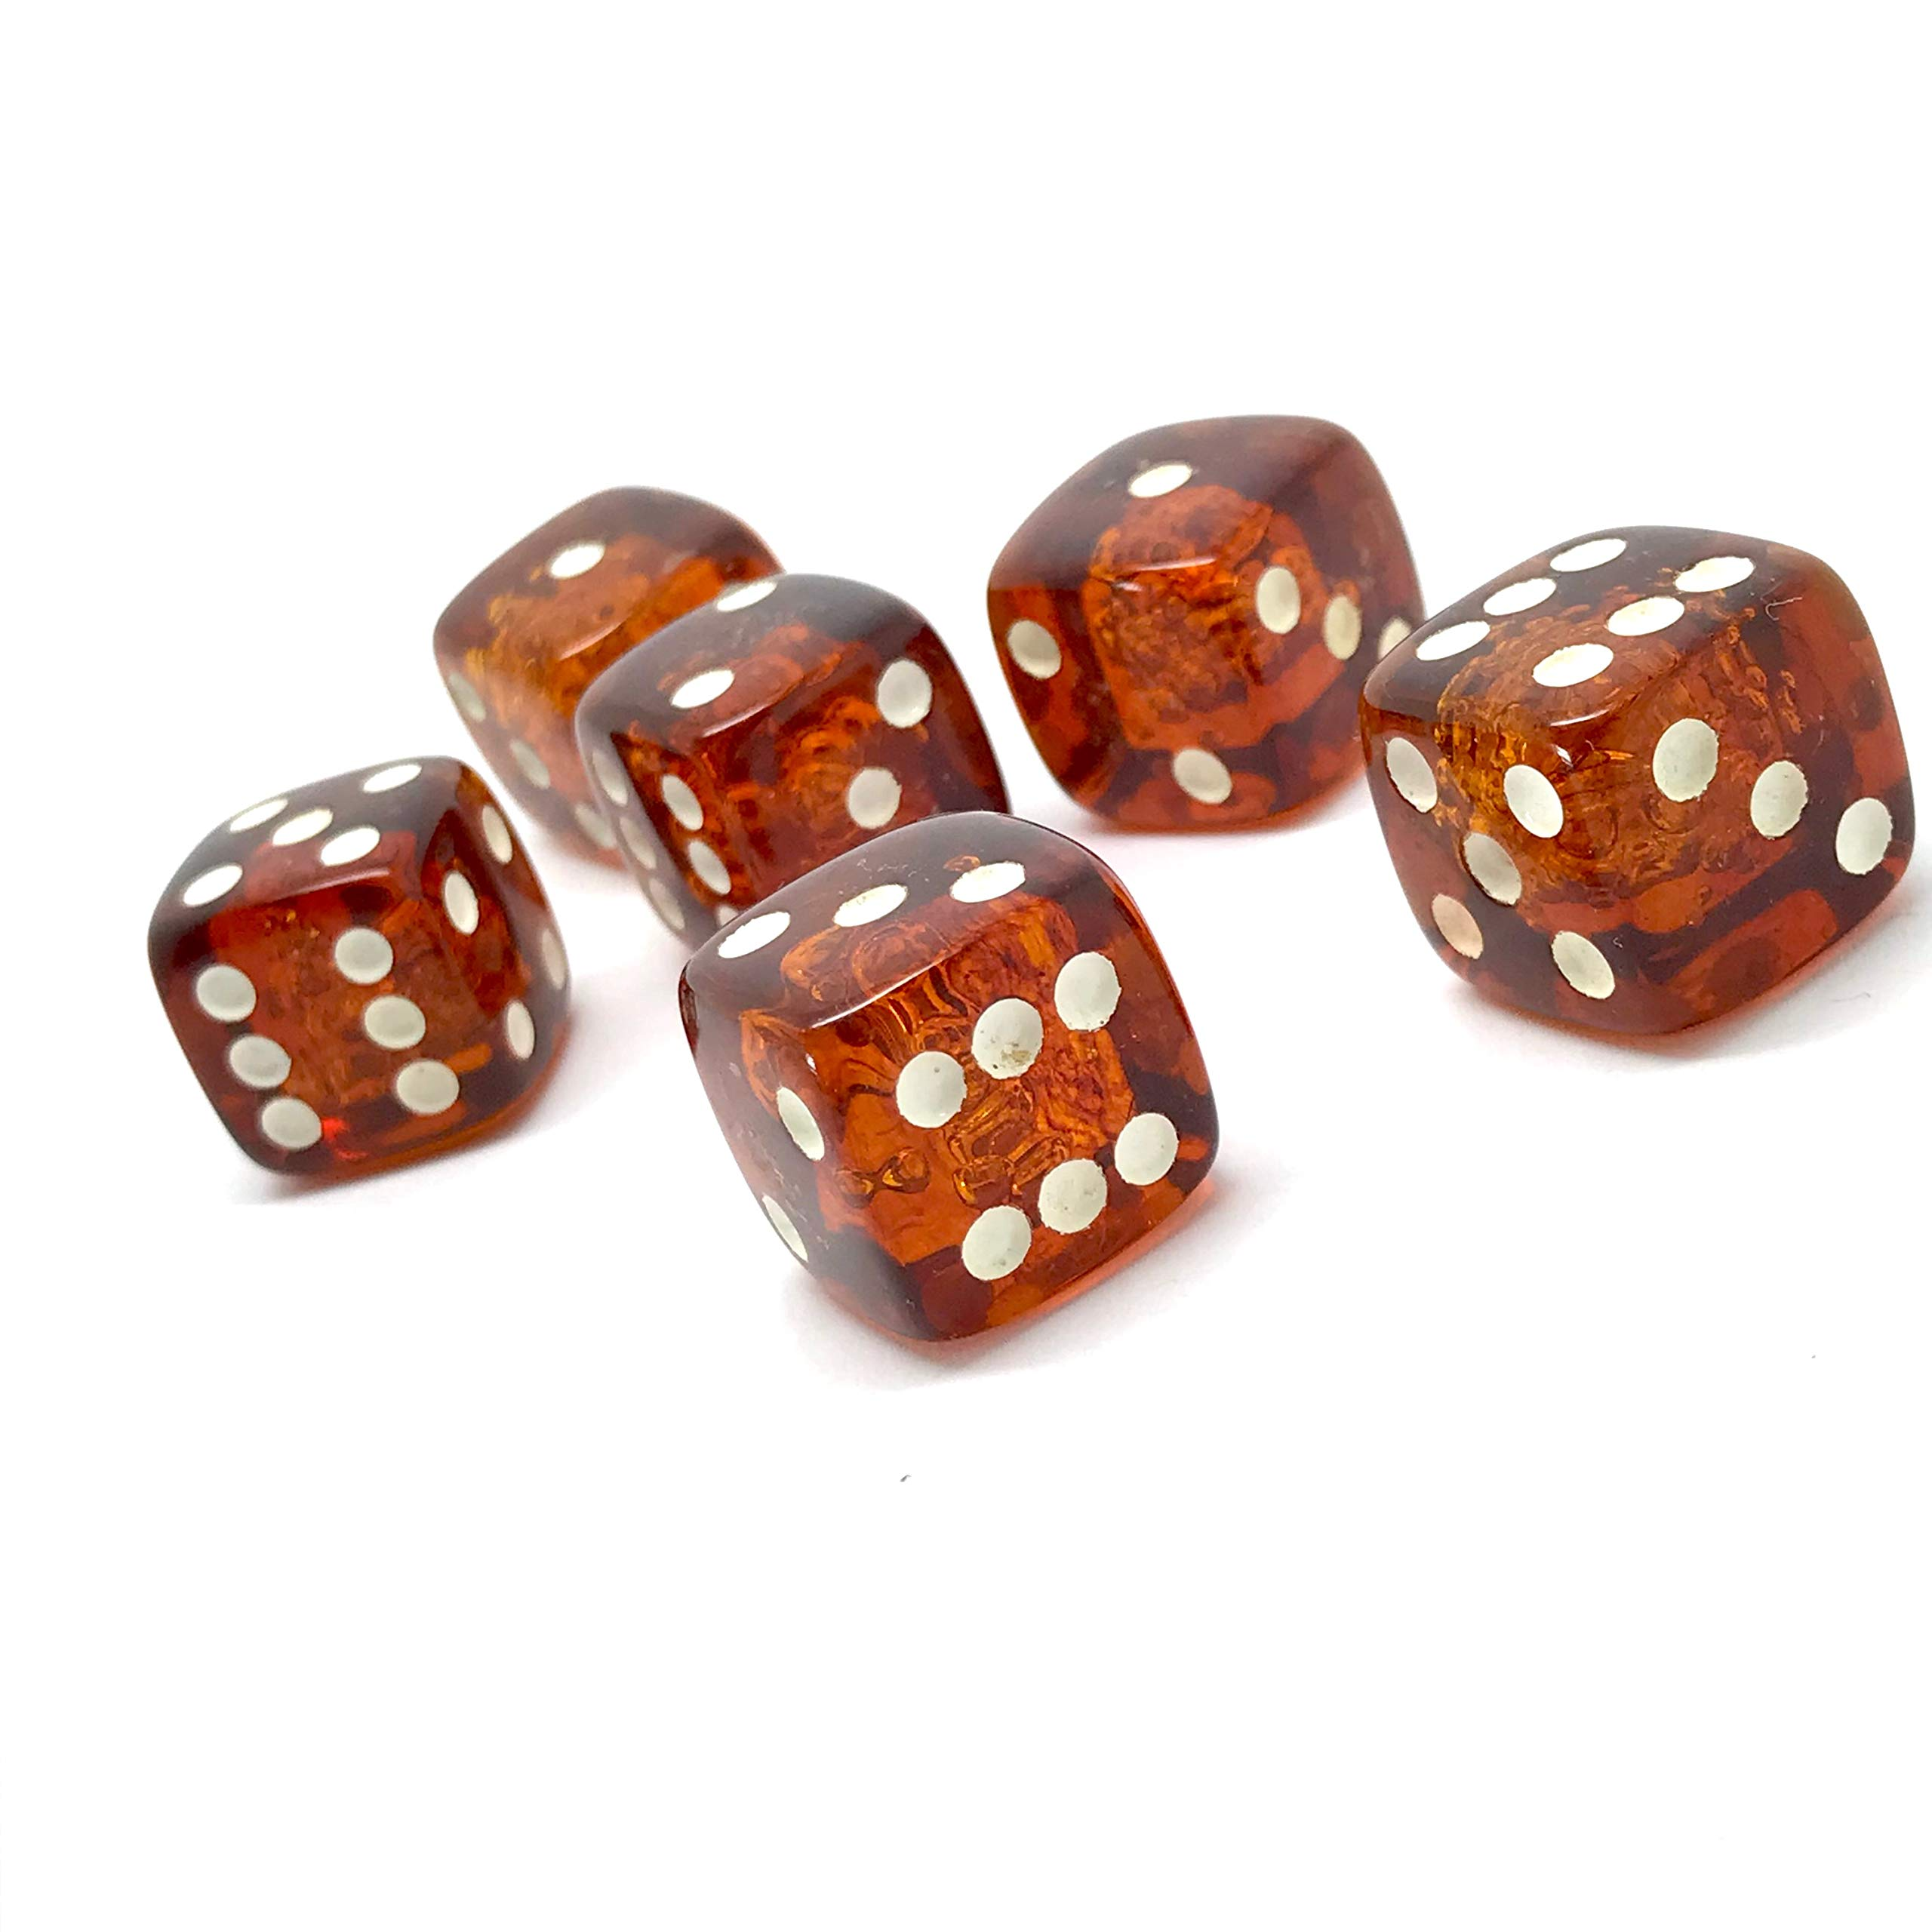 x6 Proper size Amber Dice set for Board games and Gambling by Generic (Image #3)